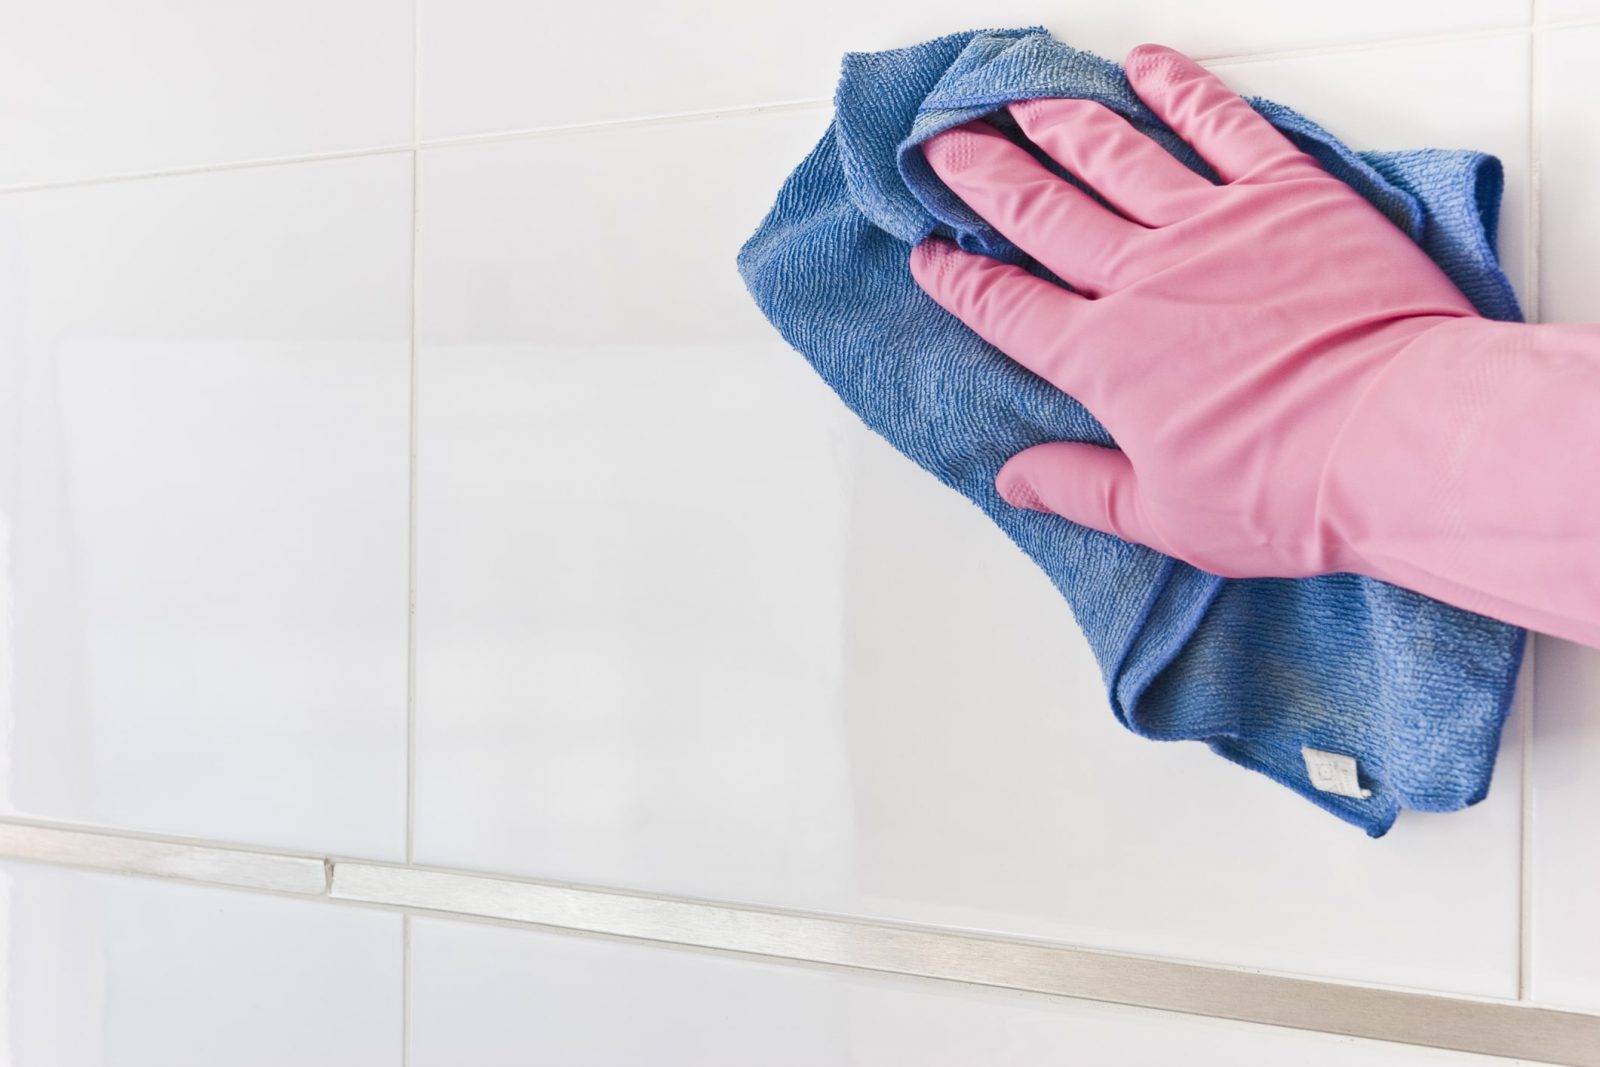 cleaning tiles by cleaning services in Mount Prospect